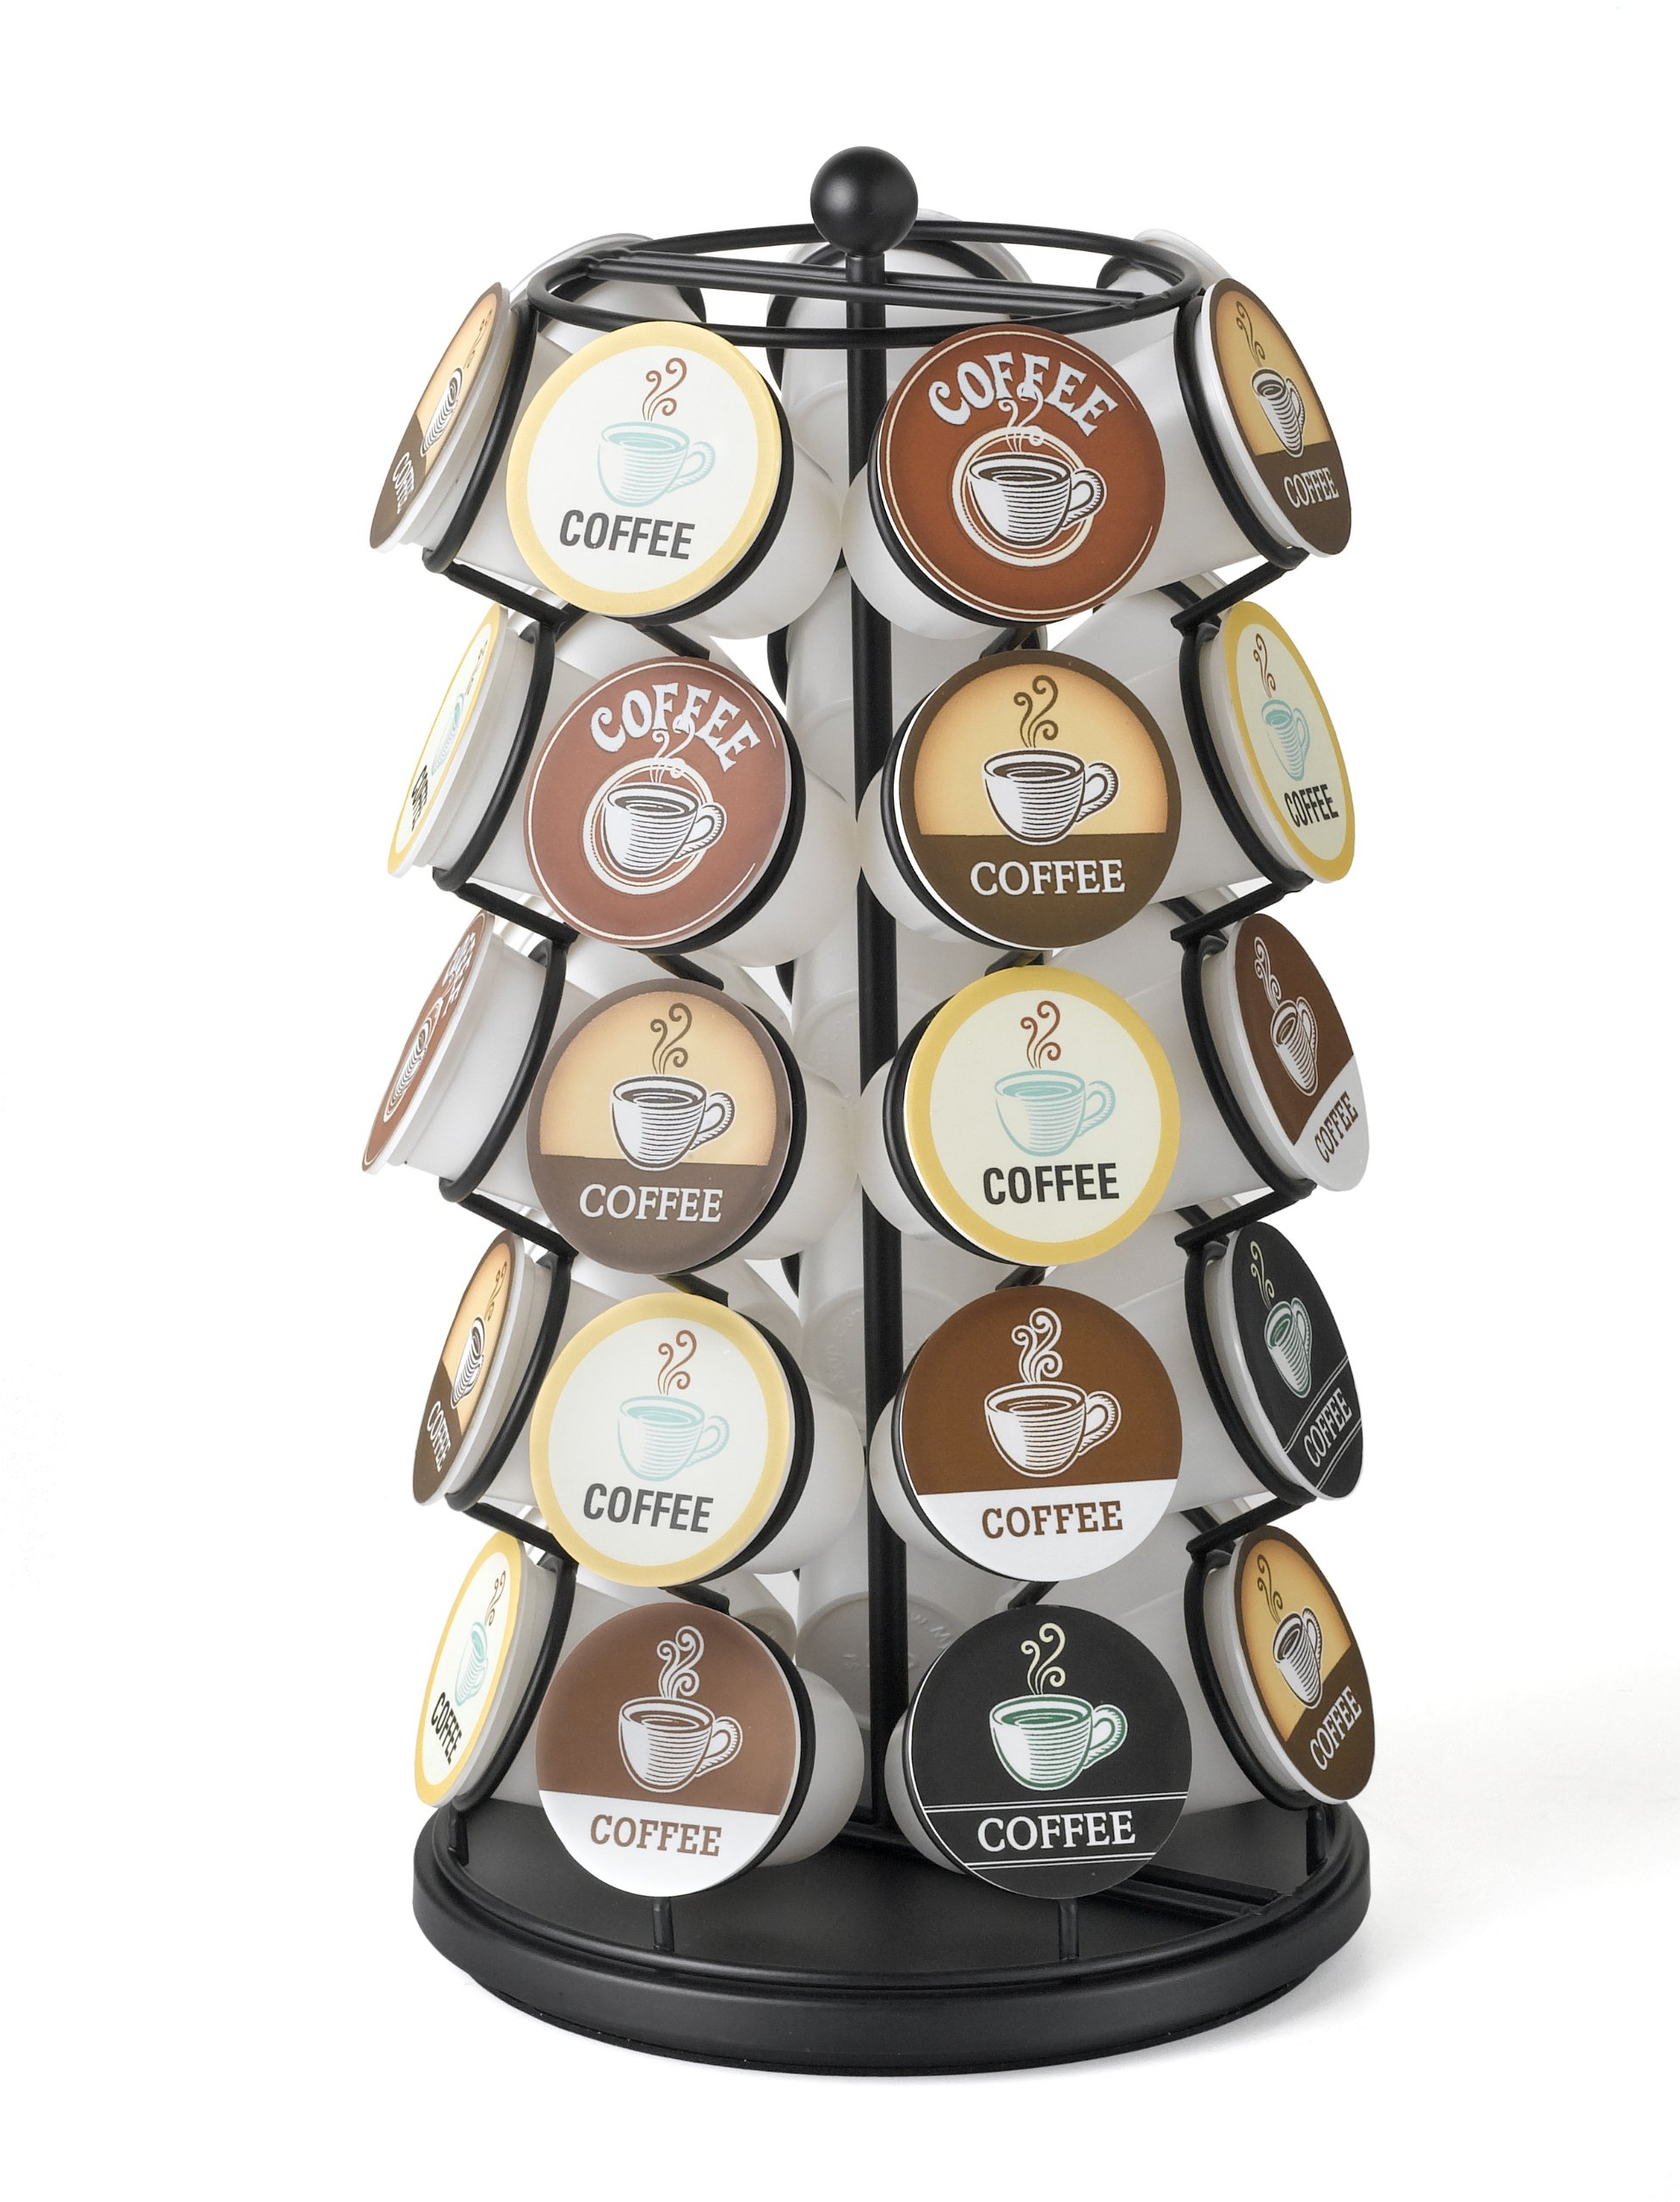 K-Cup Carousel - Holds 35 K-Cups in Black by NIFTY